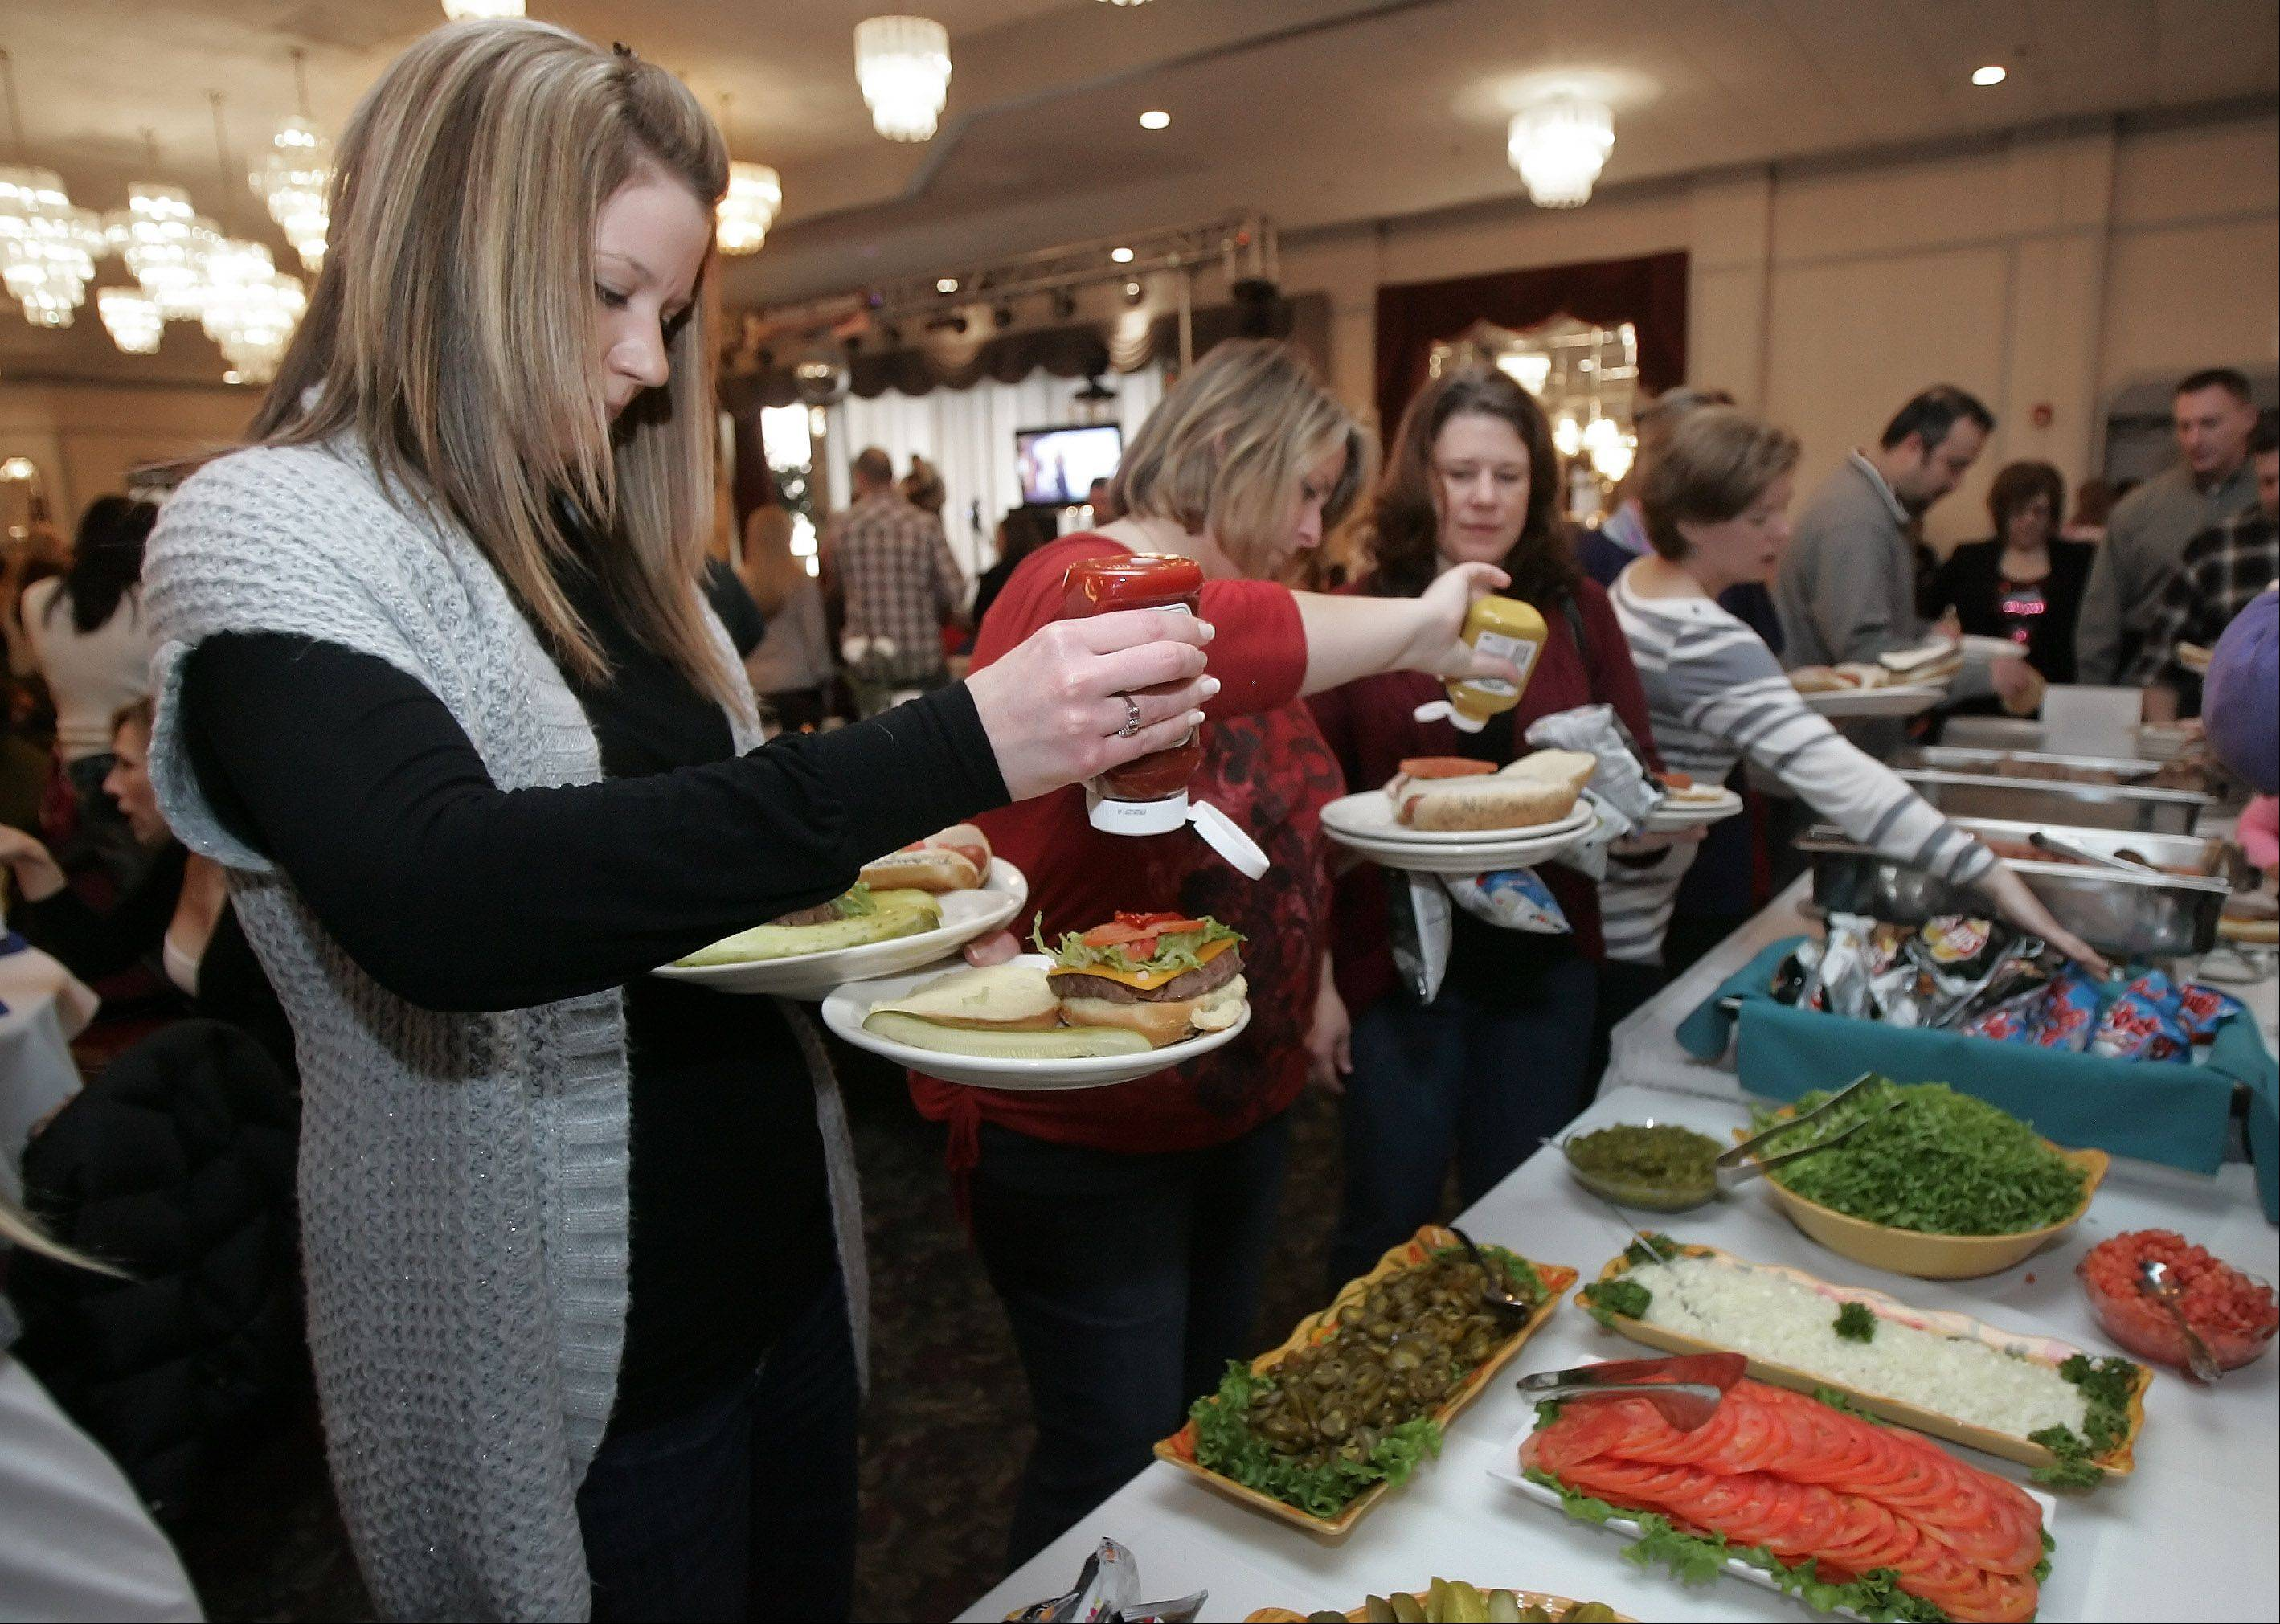 Michelle Zalewski, of Wheeling, holds three plates of food for her children during the New Year's Eve-Eve Celebration Sunday at Bristol Court Banquets in Mount Prospect. The Mount Prospect Downtown Merchants Association hosted the fifth annual party for all ages.